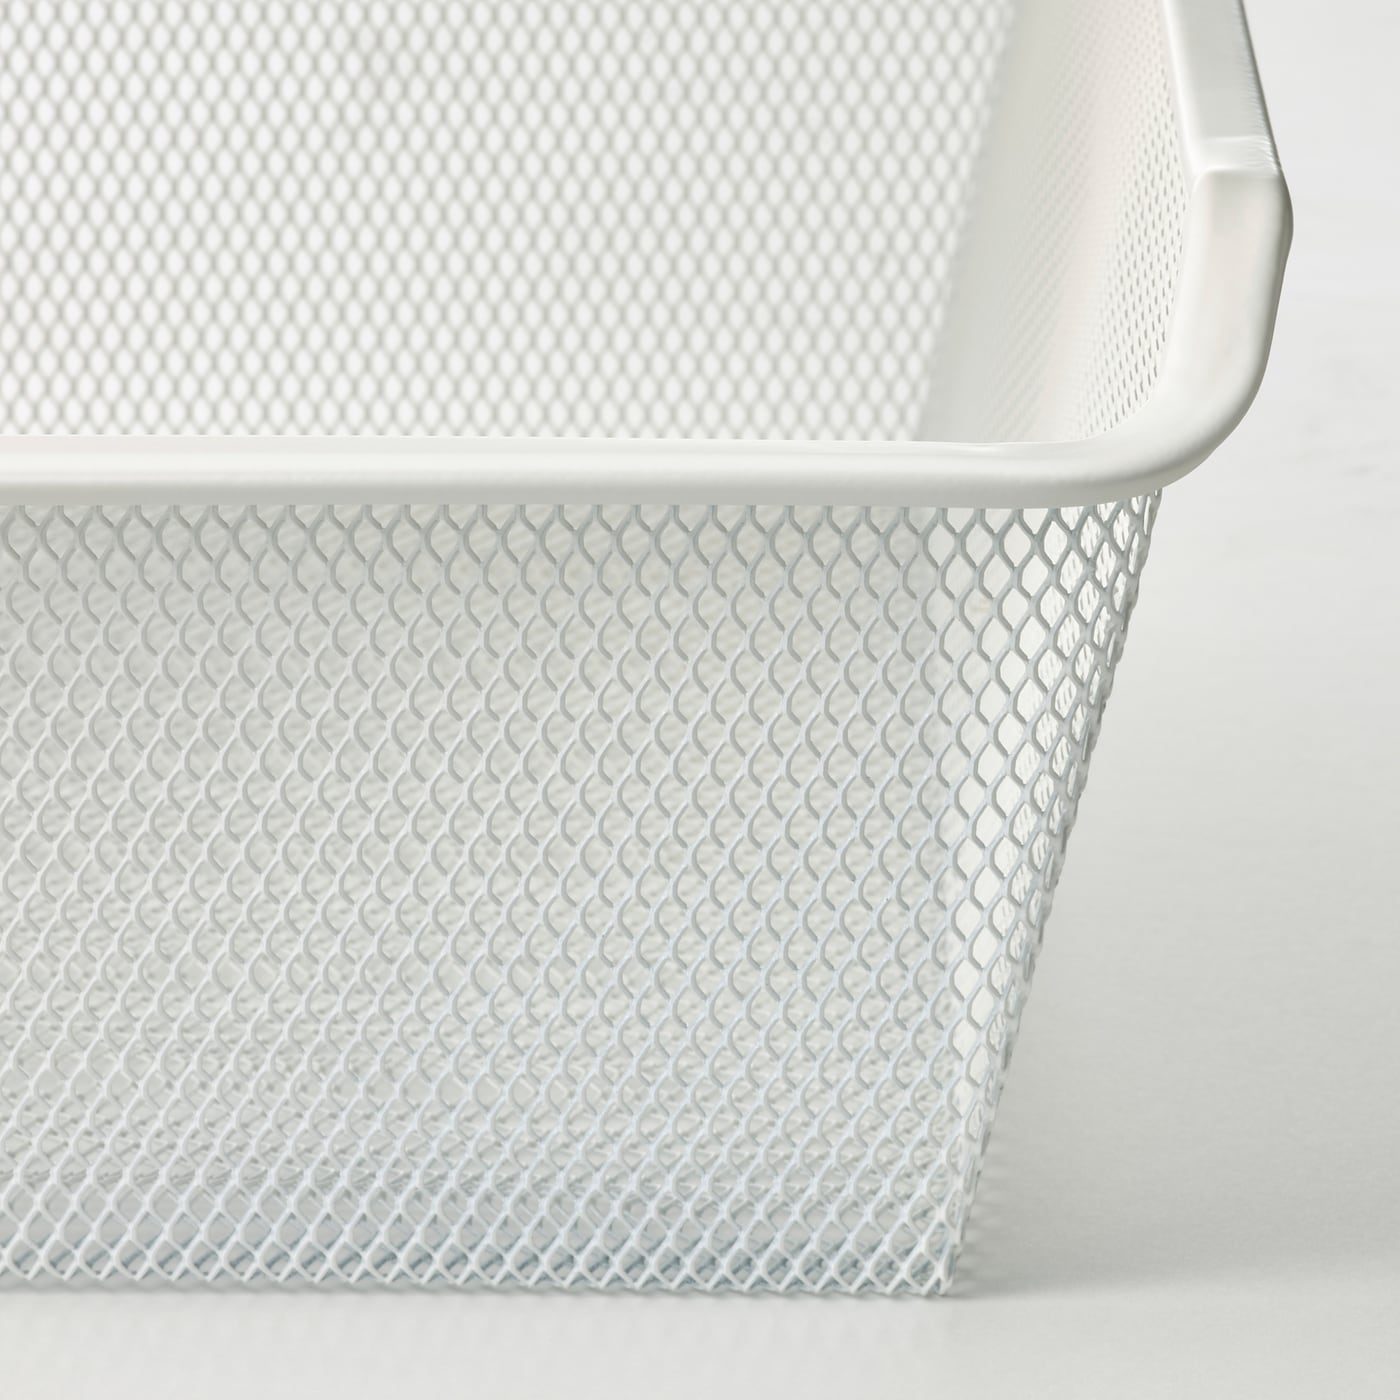 KOMPLEMENT Mesh basket with pull-out rail, white, 100x58 cm